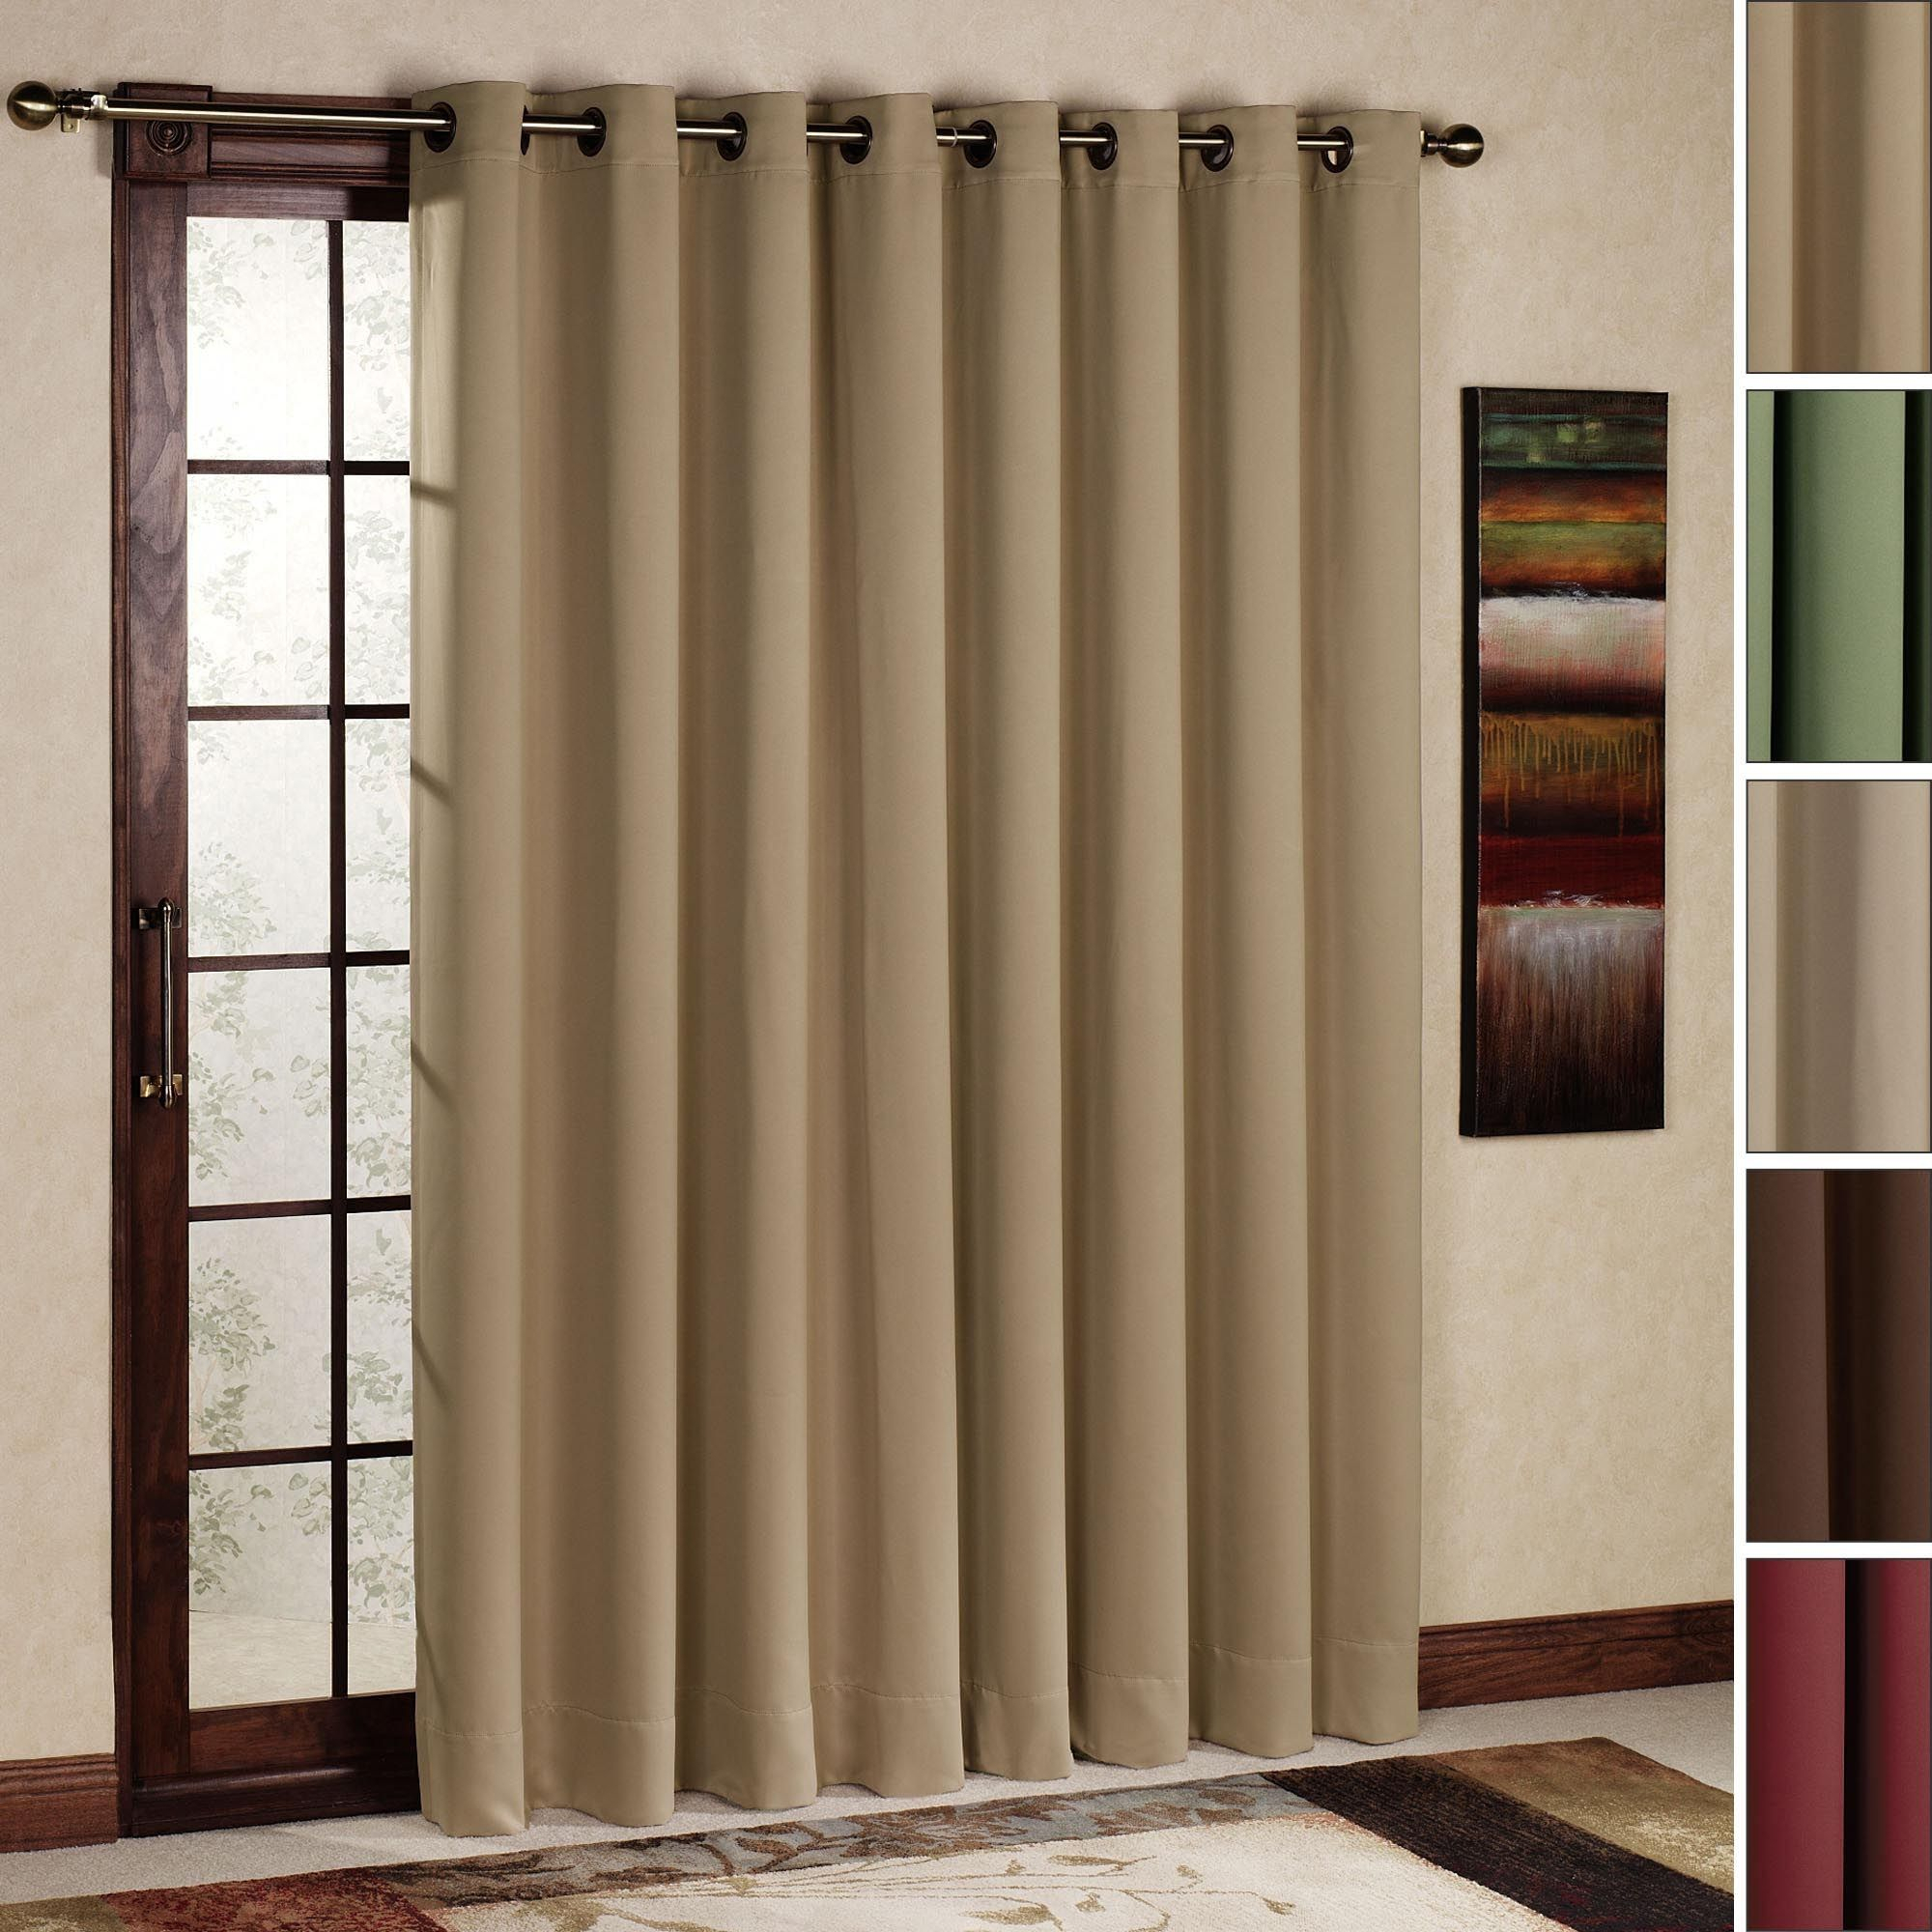 Curtains For Patio Doors You Ll Love In 2021 Visualhunt